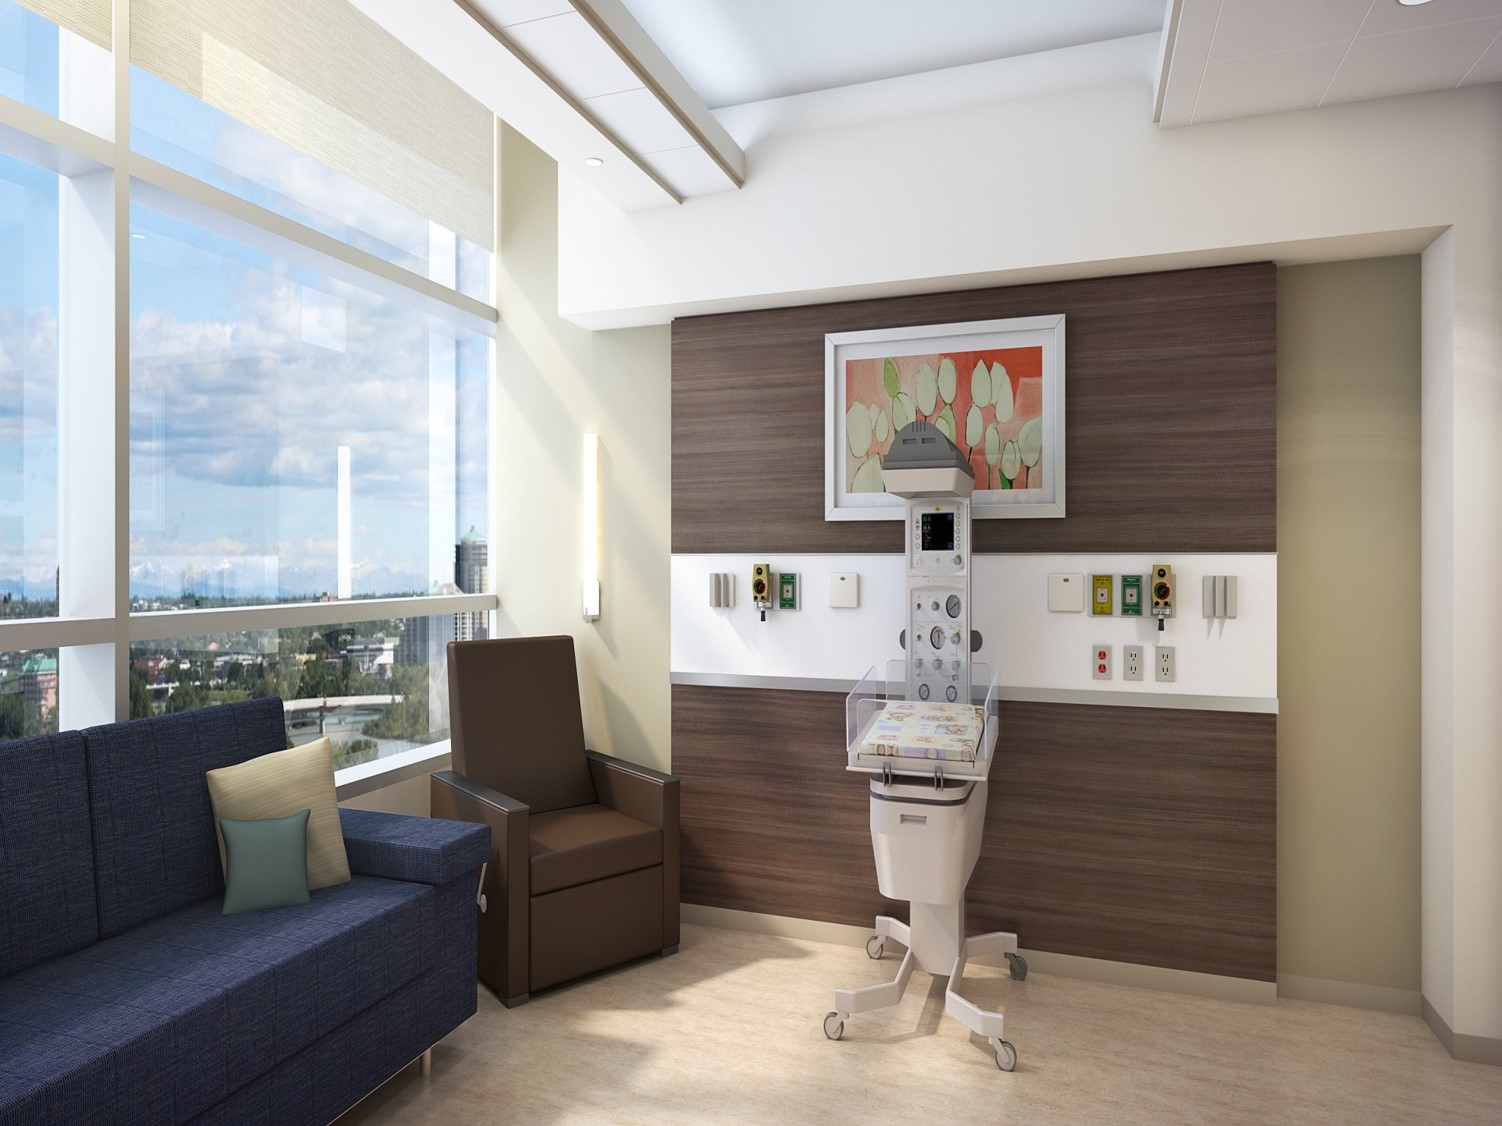 Baylor Scott & White–Lake Pointe begins construction on new patient tower